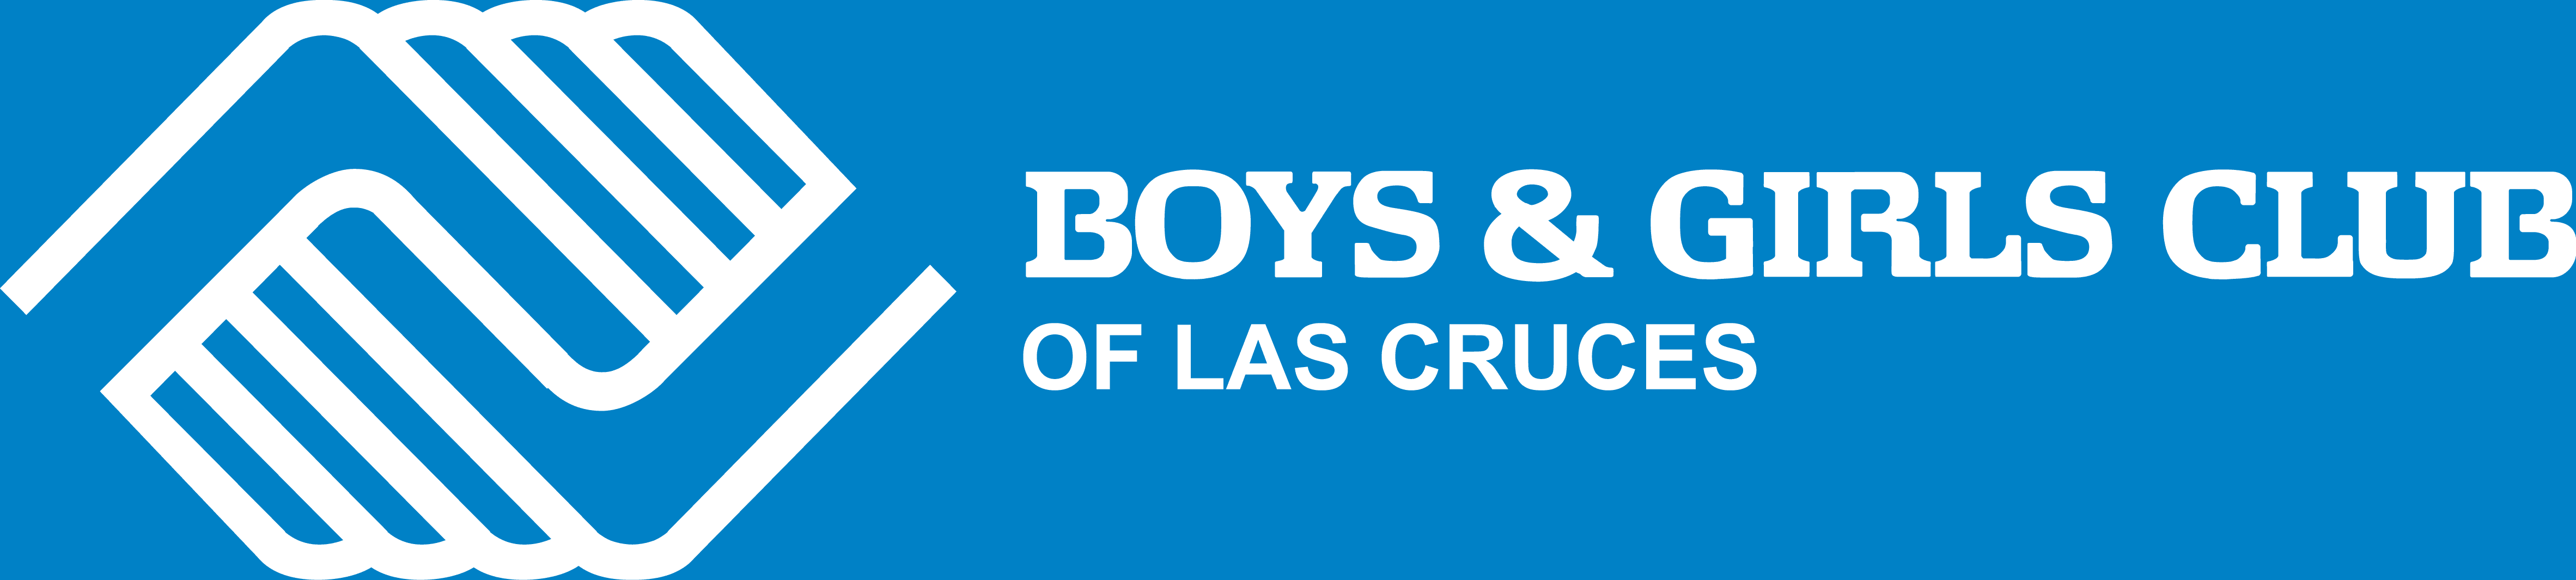 Boys and Girls Club of Las Cruces